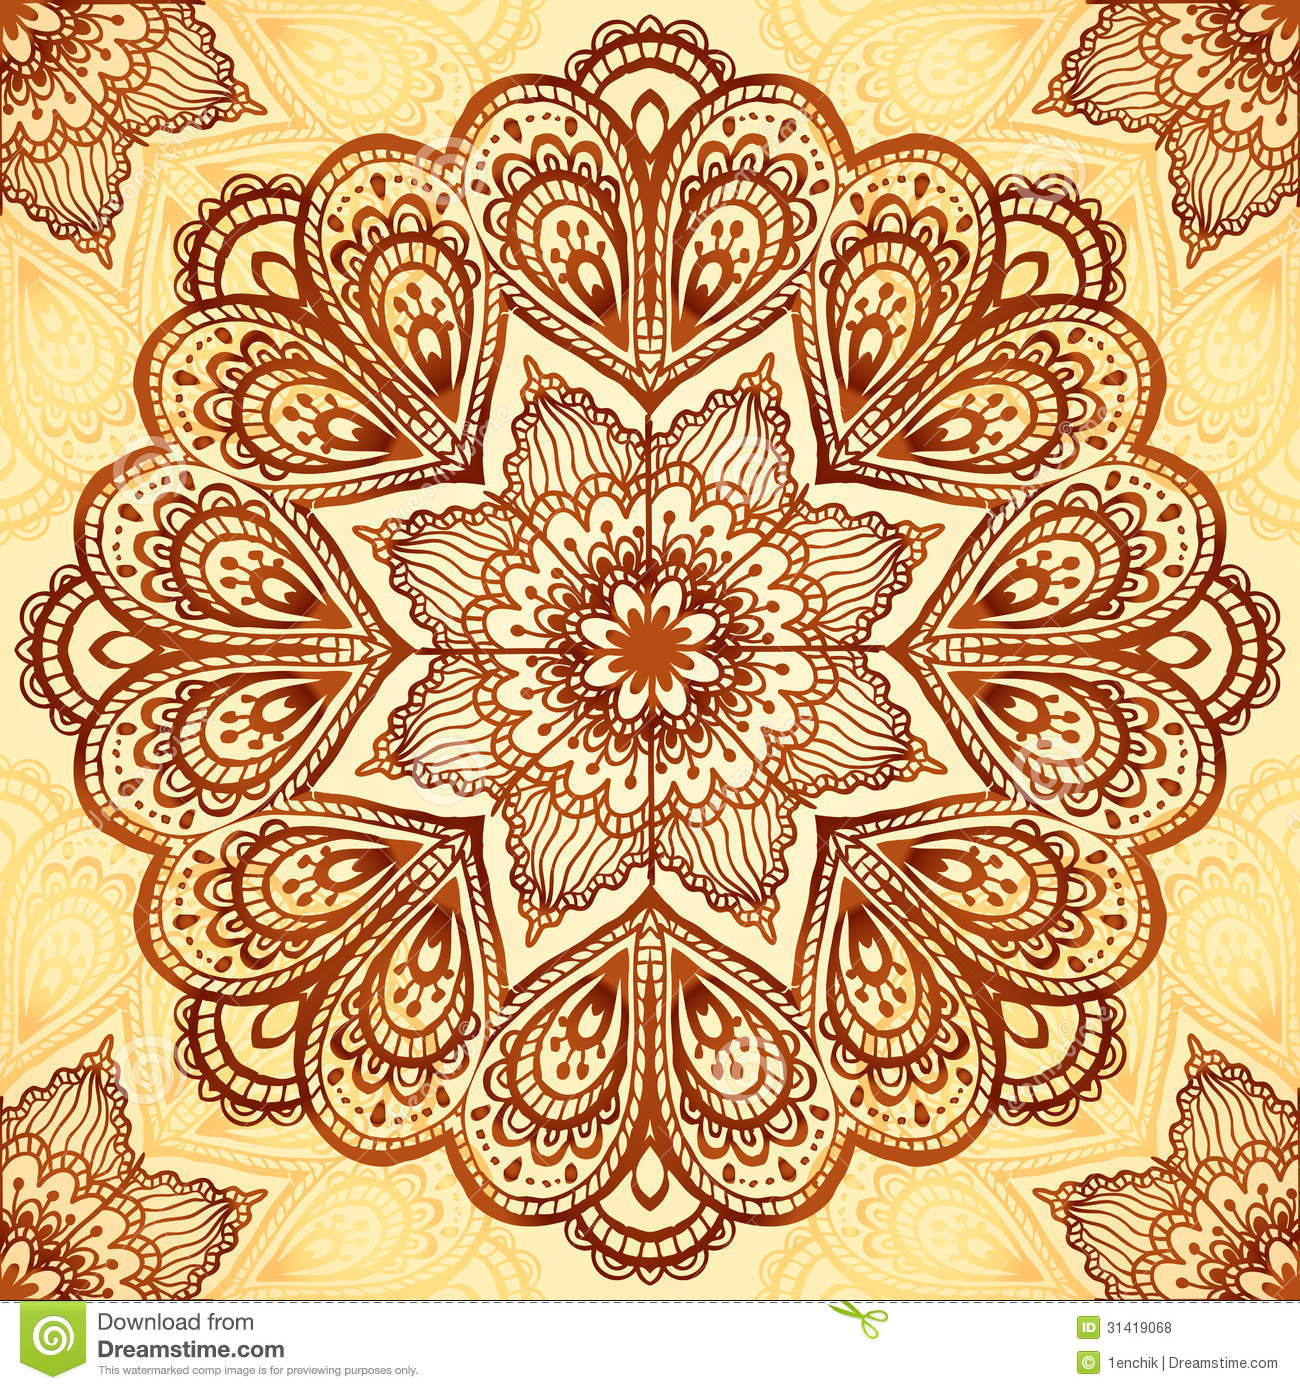 Free ornamental mandala vector download free vector art stock - Ornate Vintage Vector Napkin Background Royalty Free Stock